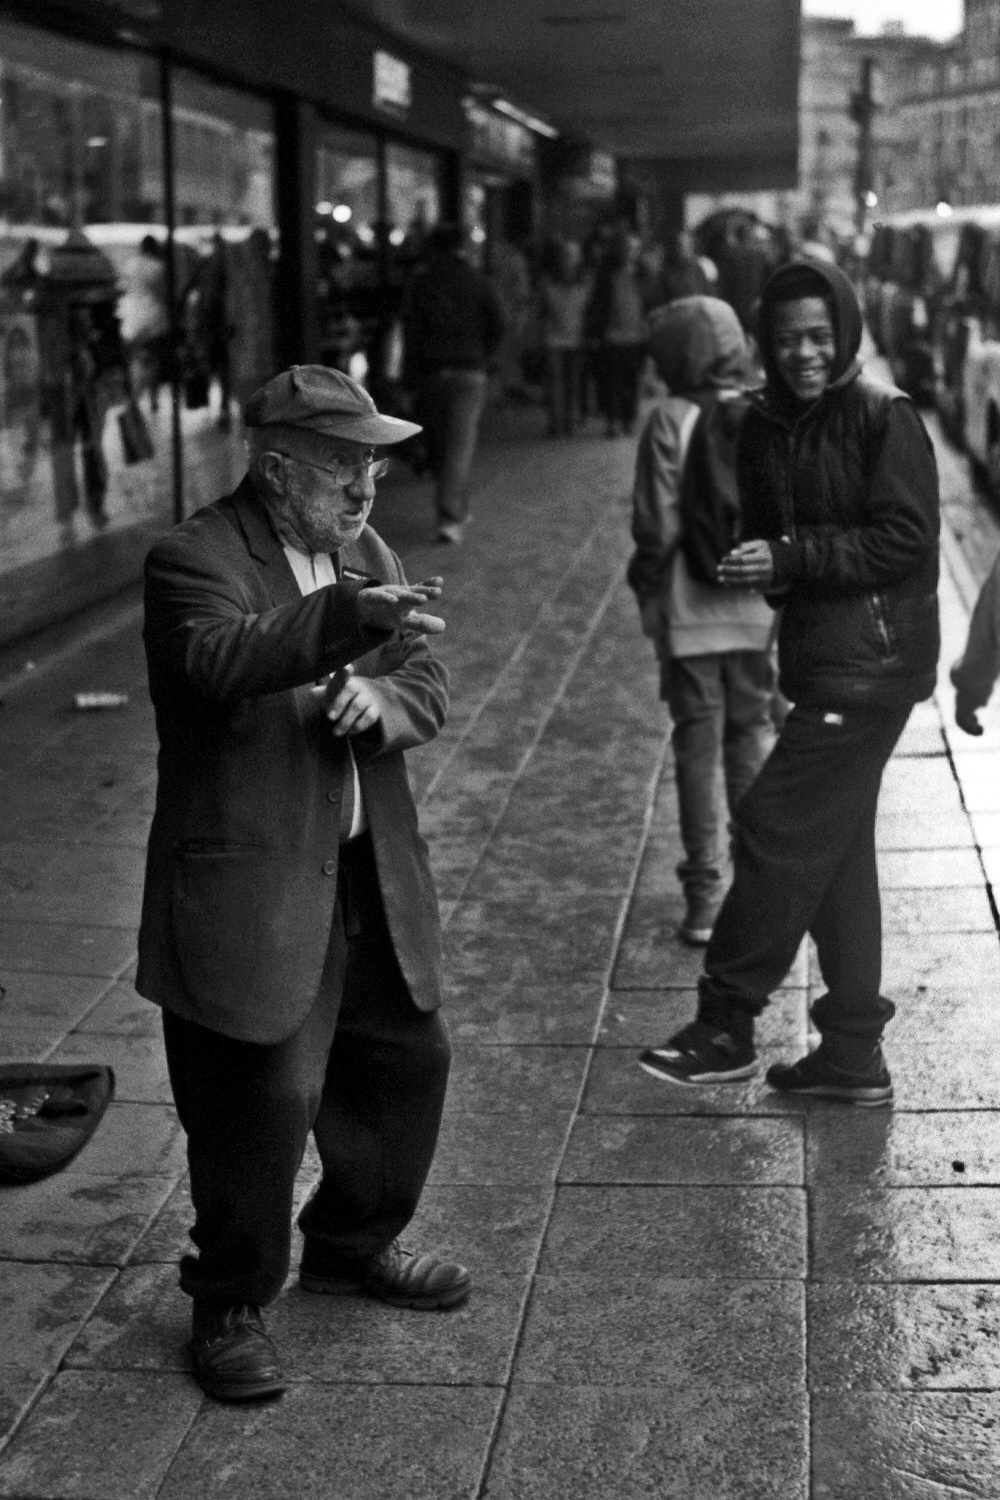 old man rave dancing in manchester whilst young lad cheers him on street photography uk photographer kevin shelley prints for sale leica m2 jupiter 8 50 f2